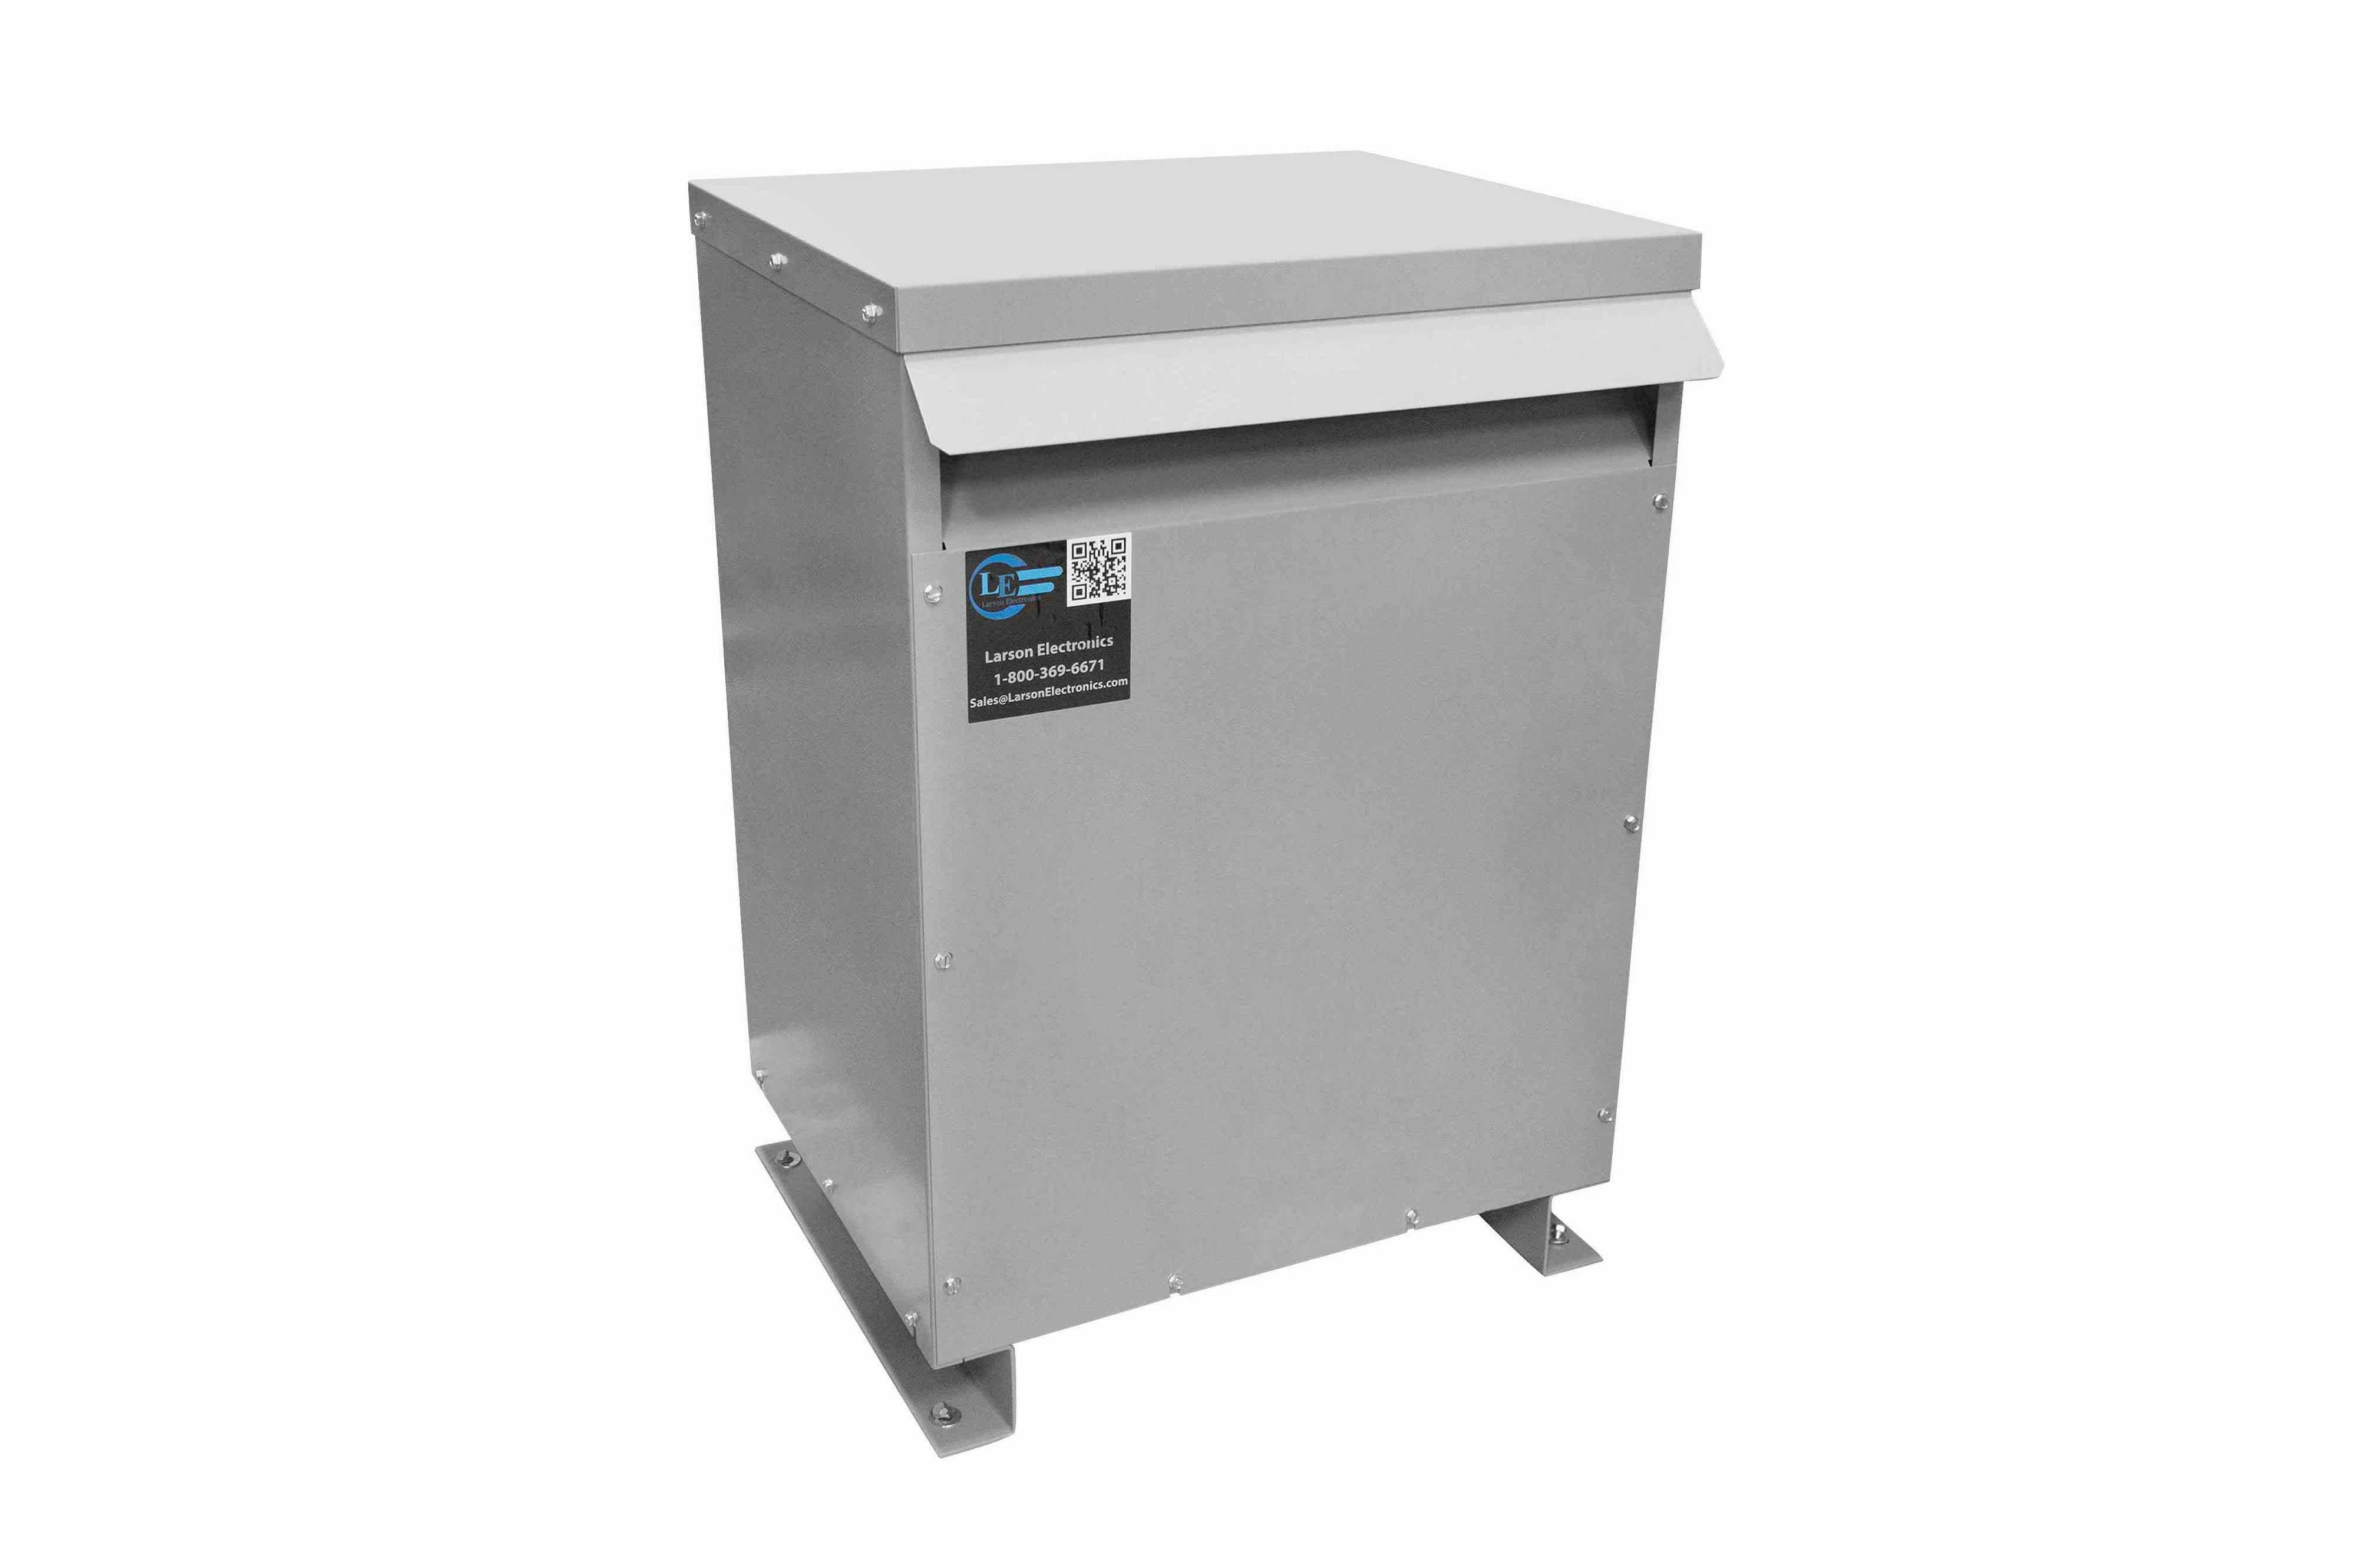 112.5 kVA 3PH DOE Transformer, 460V Delta Primary, 240V/120 Delta Secondary, N3R, Ventilated, 60 Hz